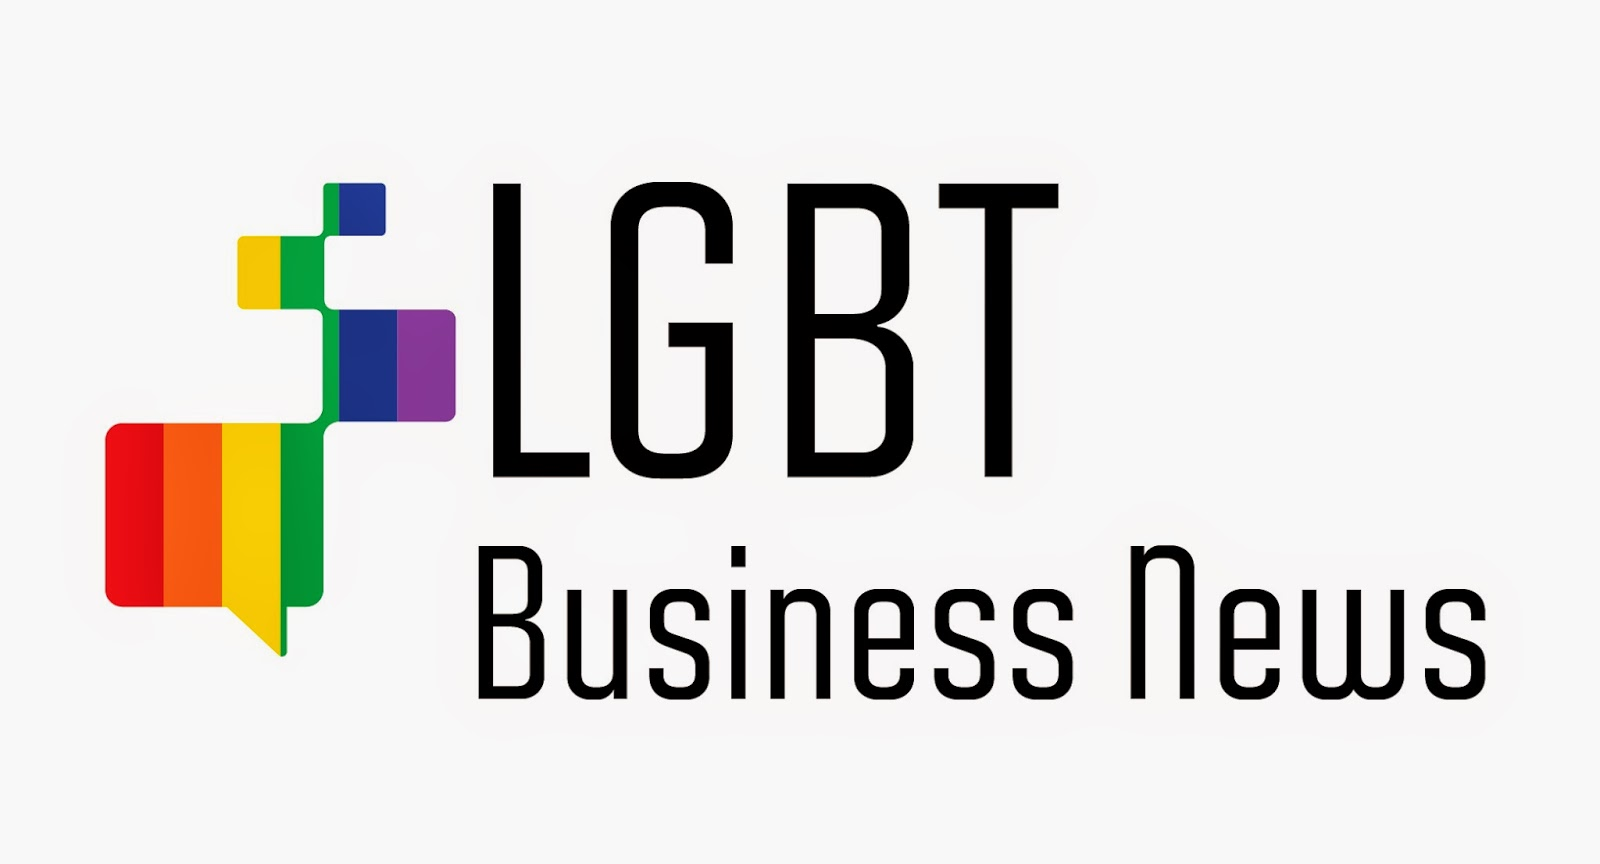 Gay friendly businesses